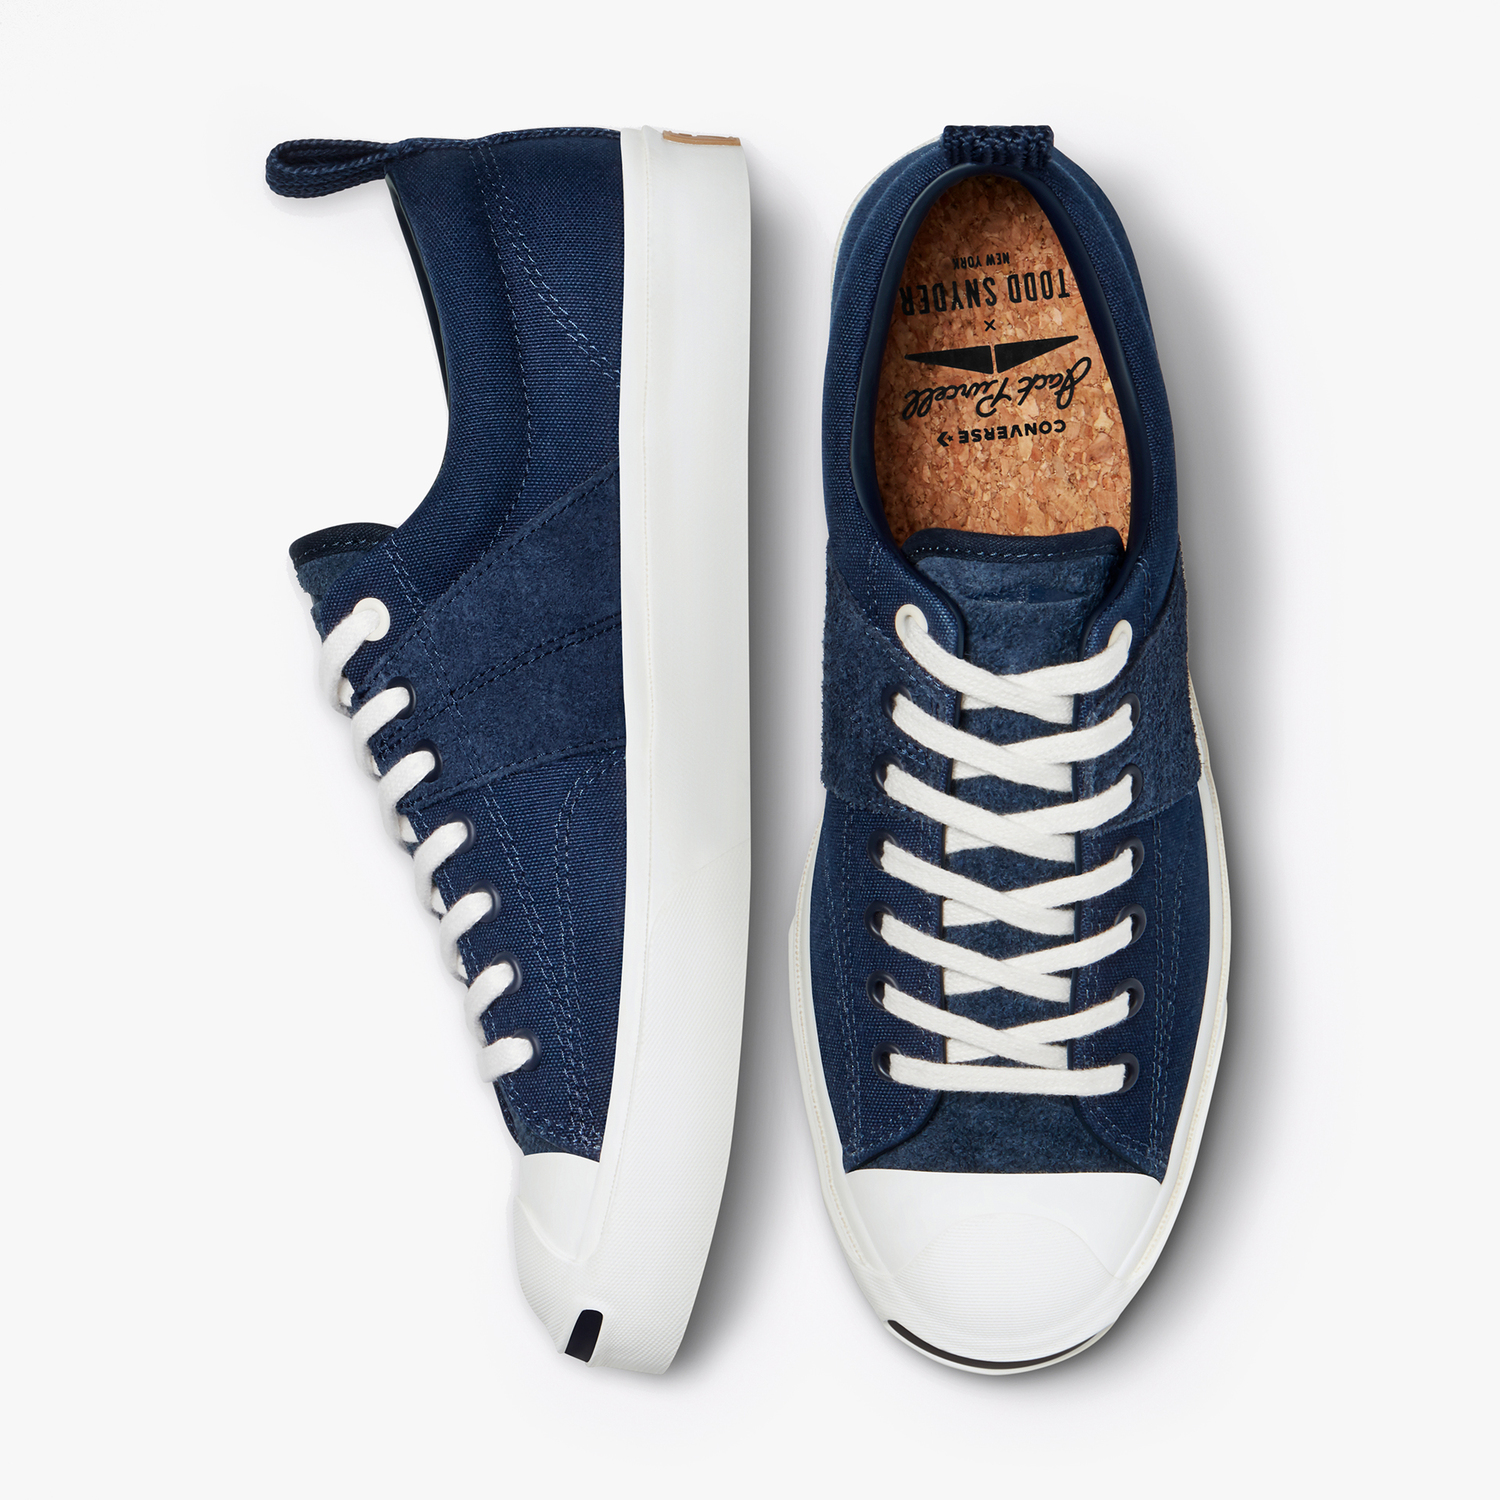 Converse x Todd Snyder Jack Purcell Ox